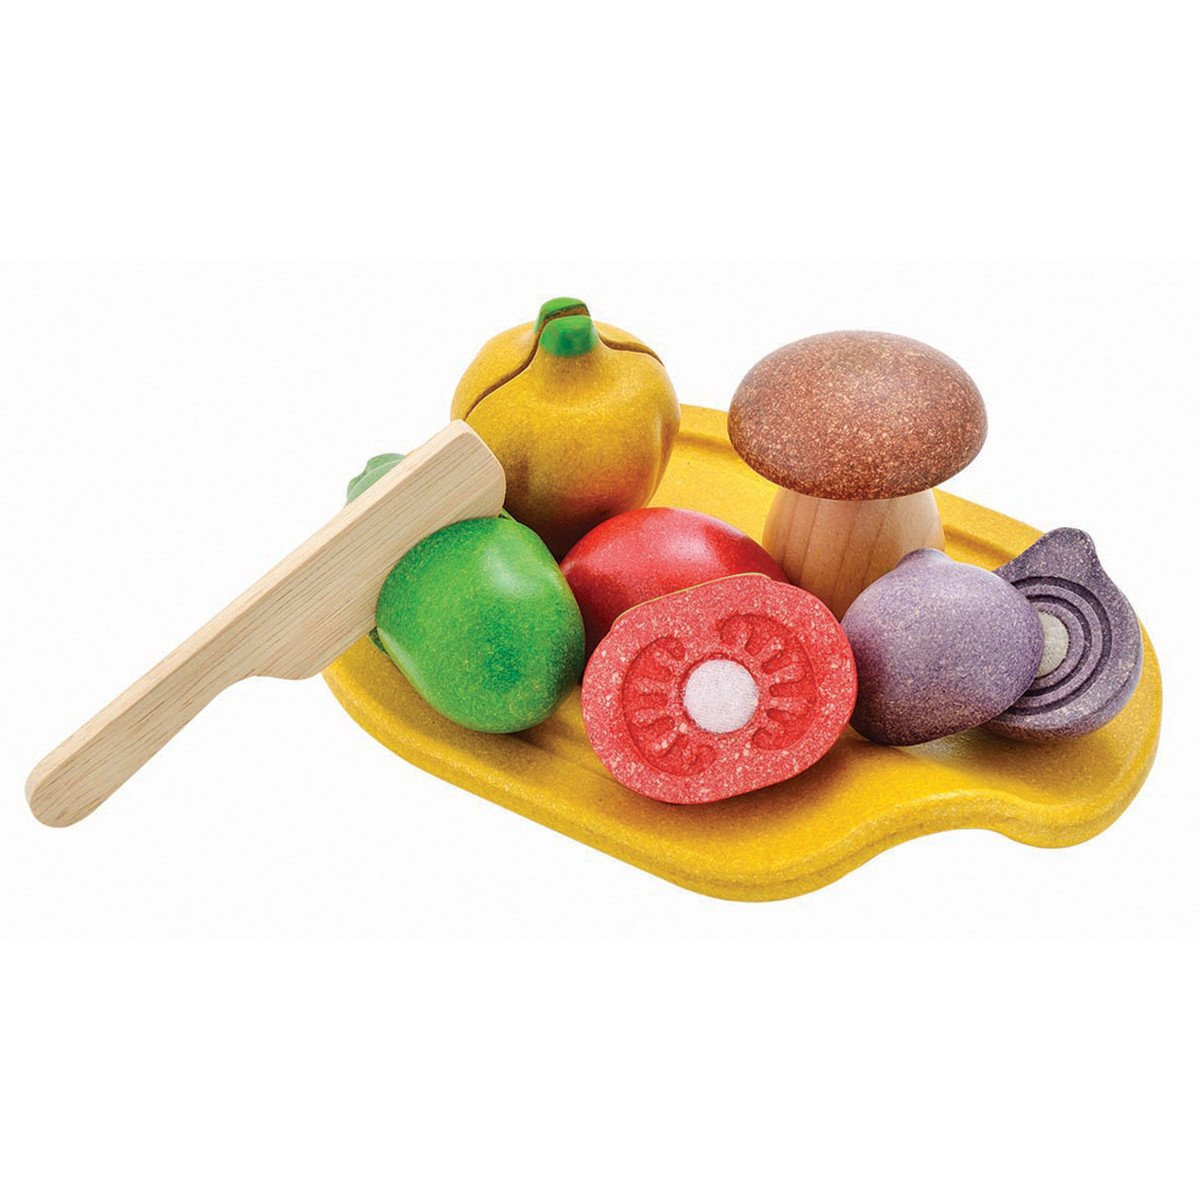 Plan Toys Assorted Vegetable Set PlanToys Pretend Play at Little Earth Nest Eco Shop